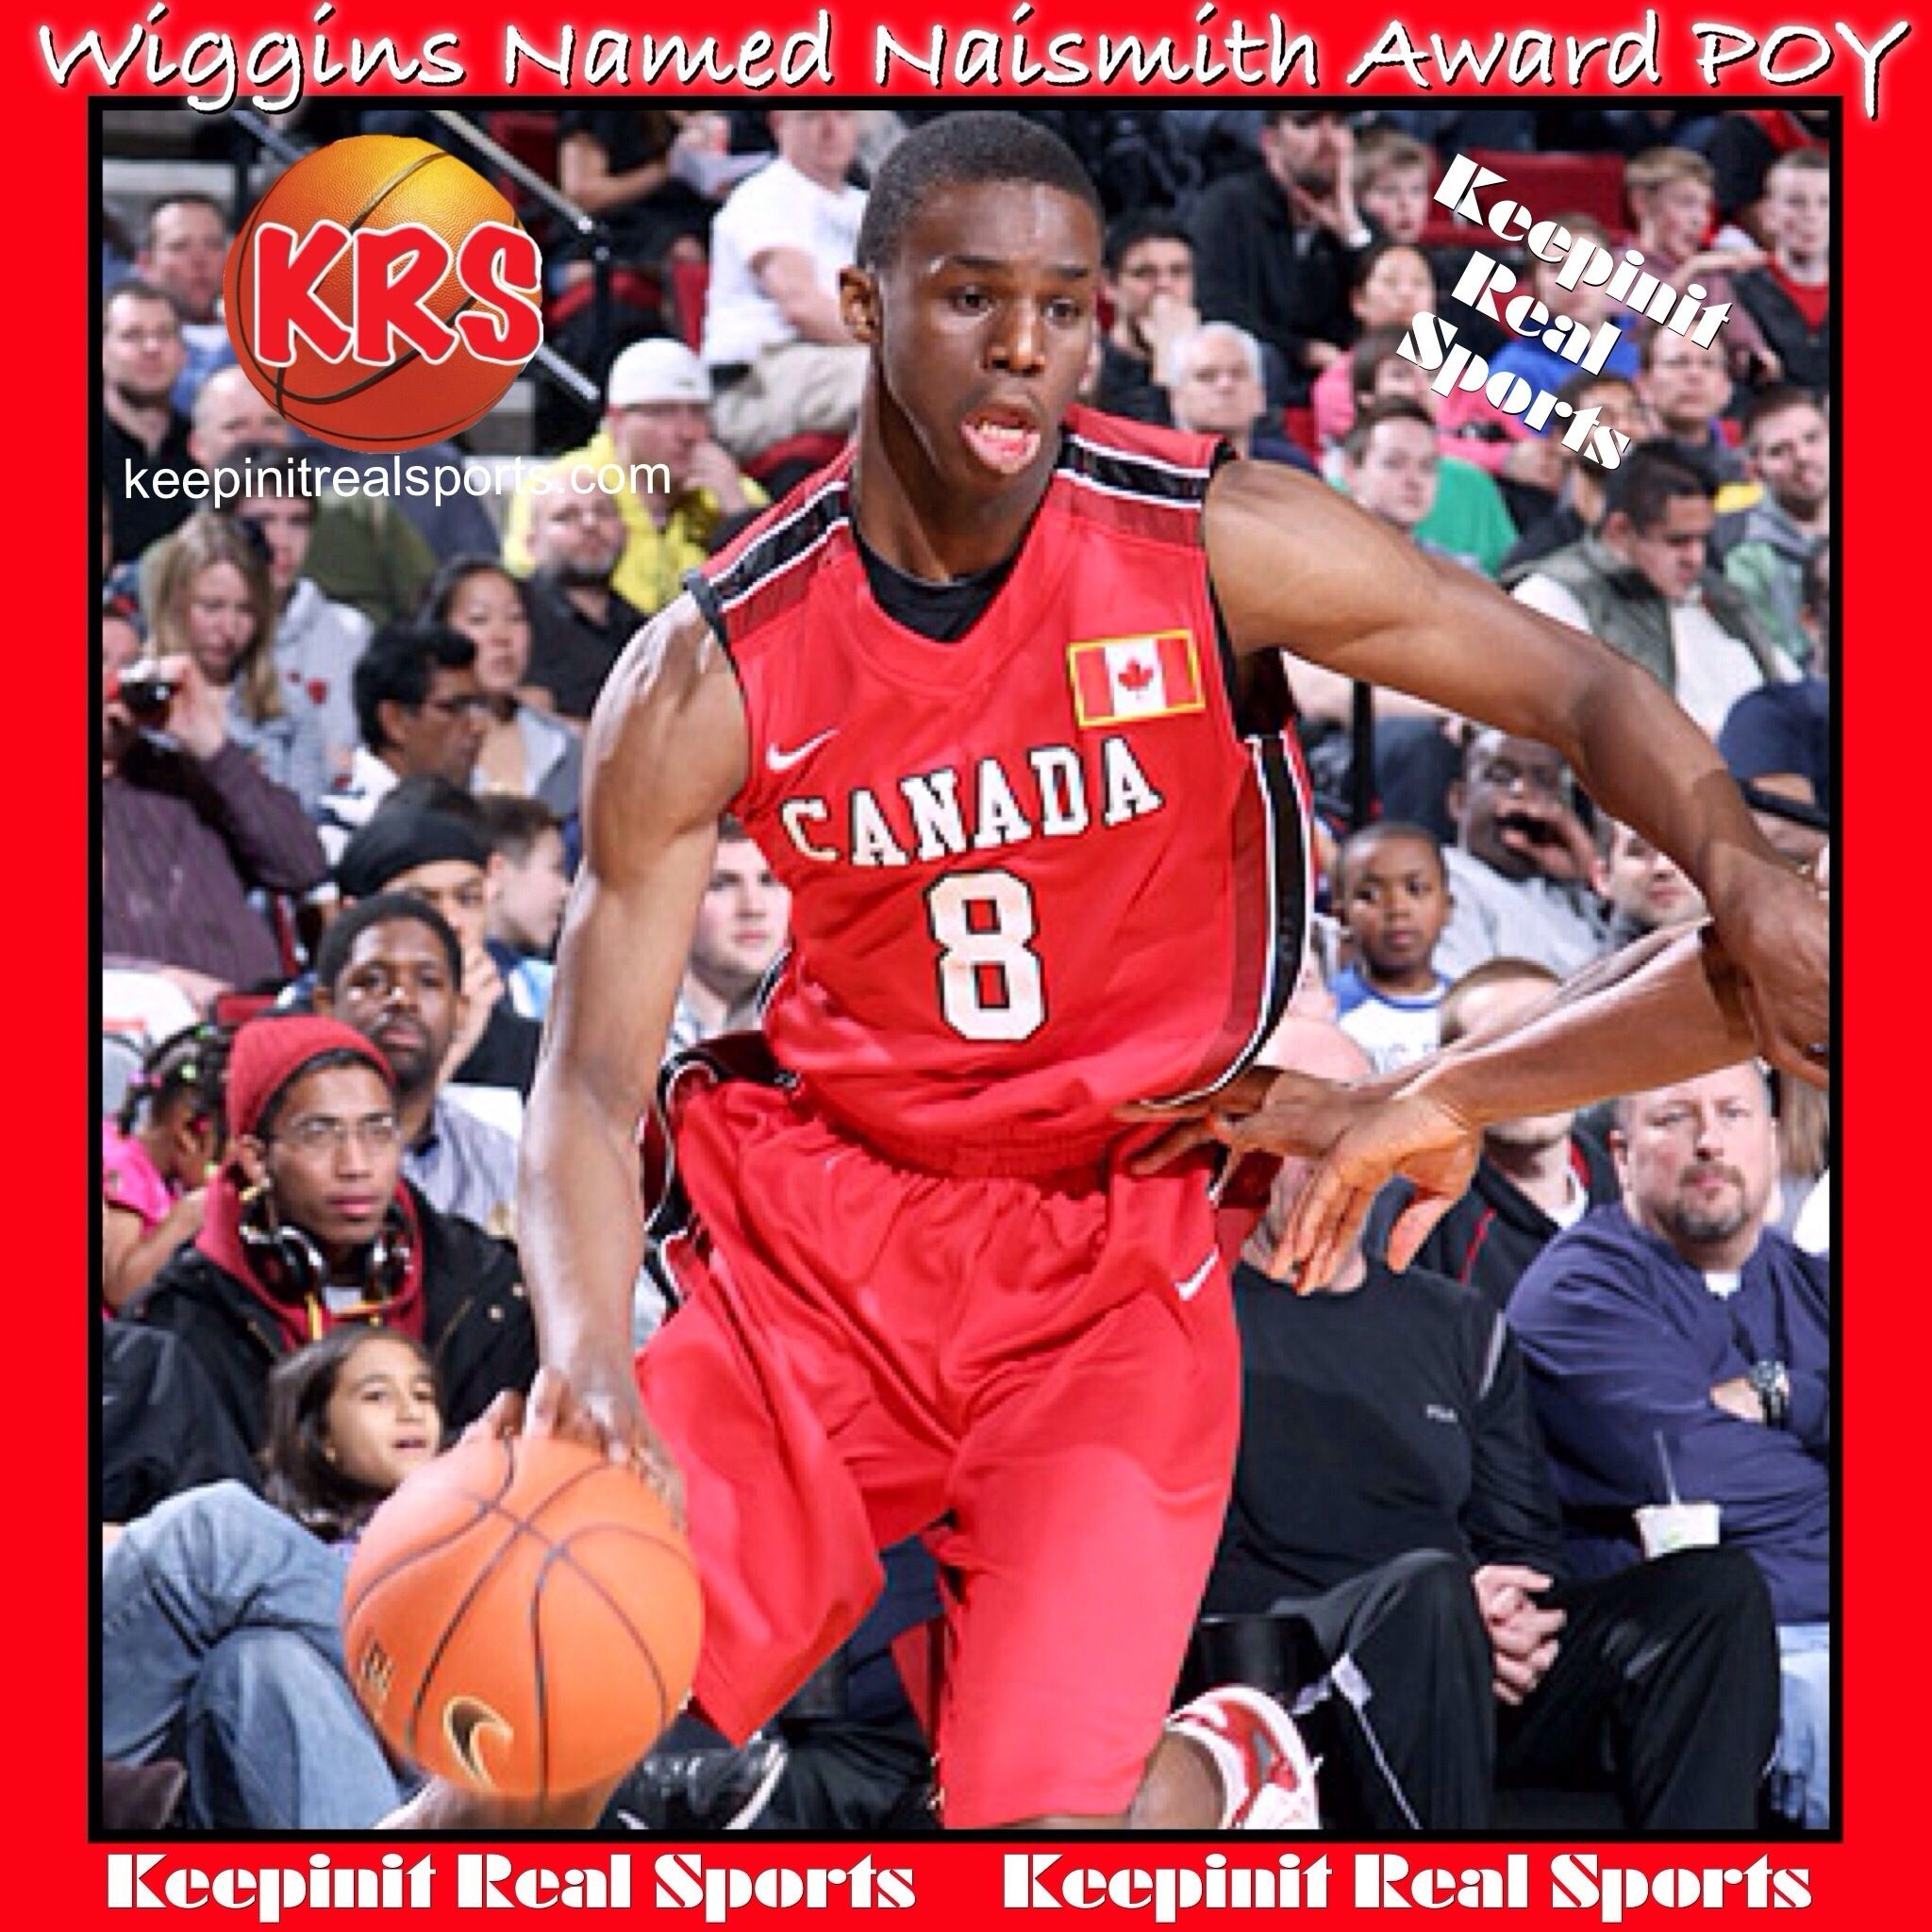 Keepinit Real High School News Andrew Wiggins Named